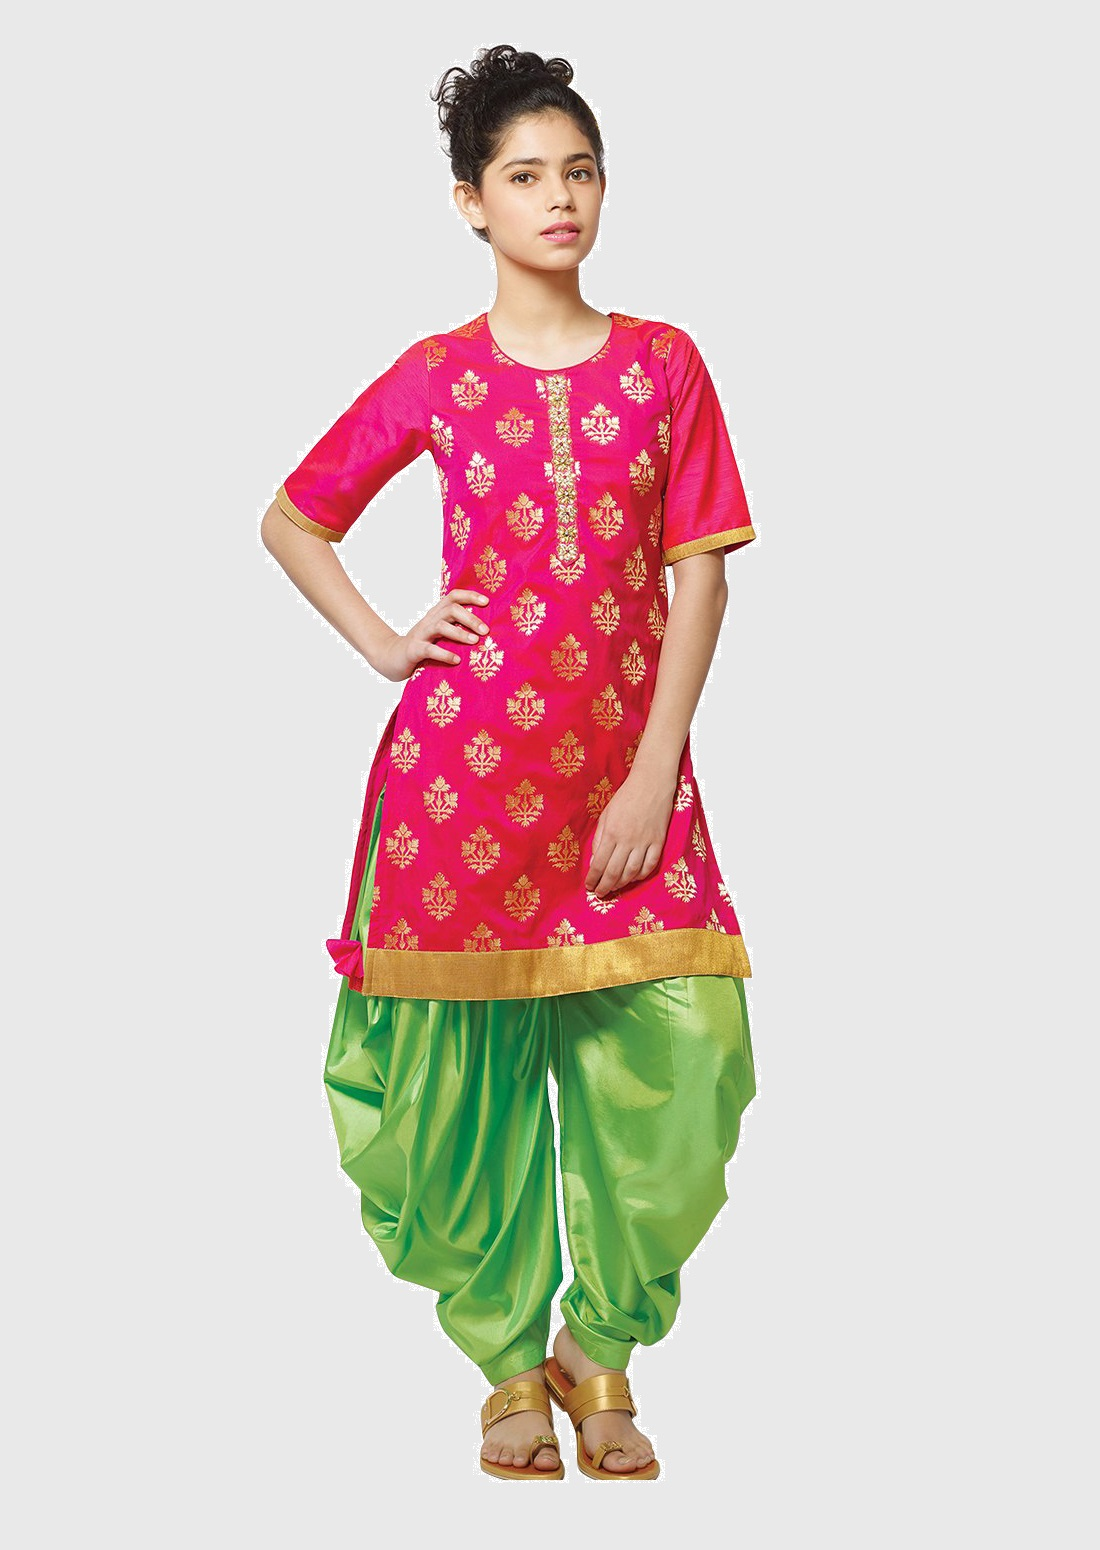 Low Clothes Clothing Prices Girls Online Buy Latest At rdtoxBQshC